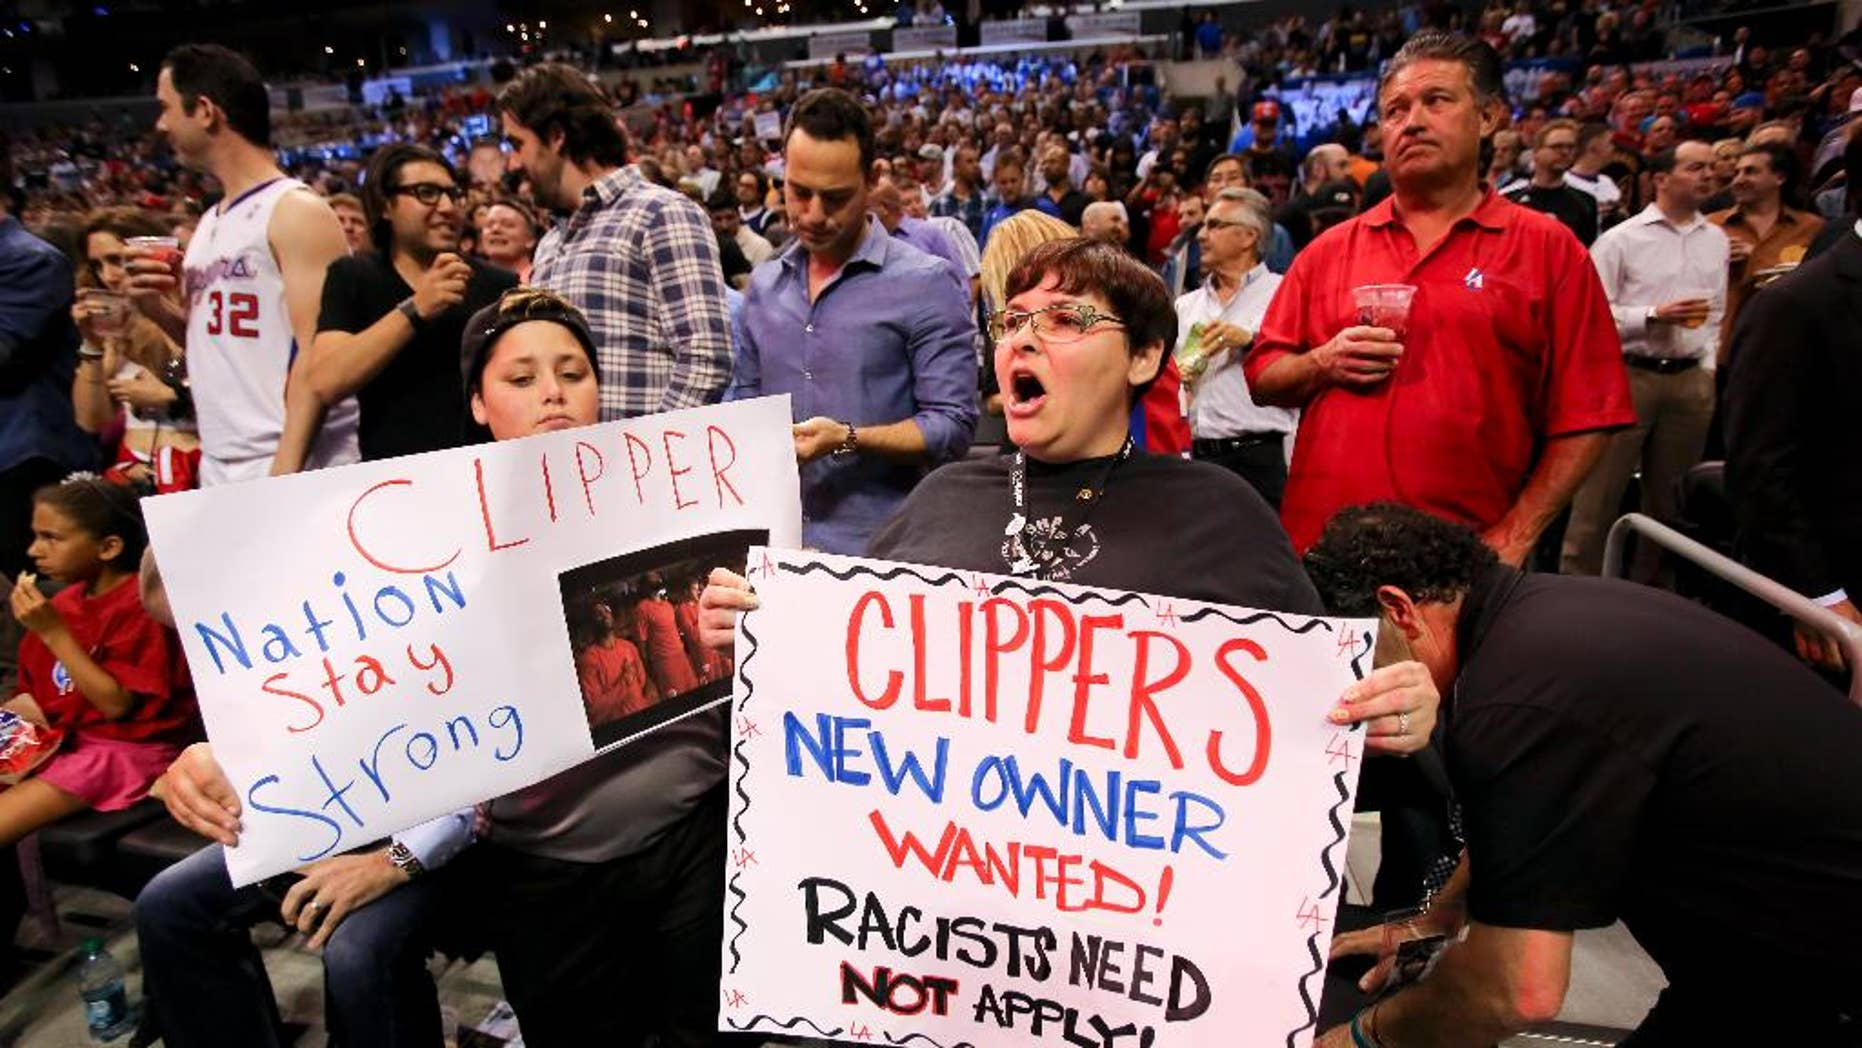 Fans hold up signs in support of the Los Angeles Clippers before Game 5 of an opening-round NBA basketball playoff series between the Clippers and the Golden State Warriors on Tuesday, April 29, 2014, in Los Angeles. NBA Commissioner Adam Silver announced Tuesday that Clippers owner Donald Sterling has been banned for life by the league. (AP Photo/Ringo H.W. Chiu)